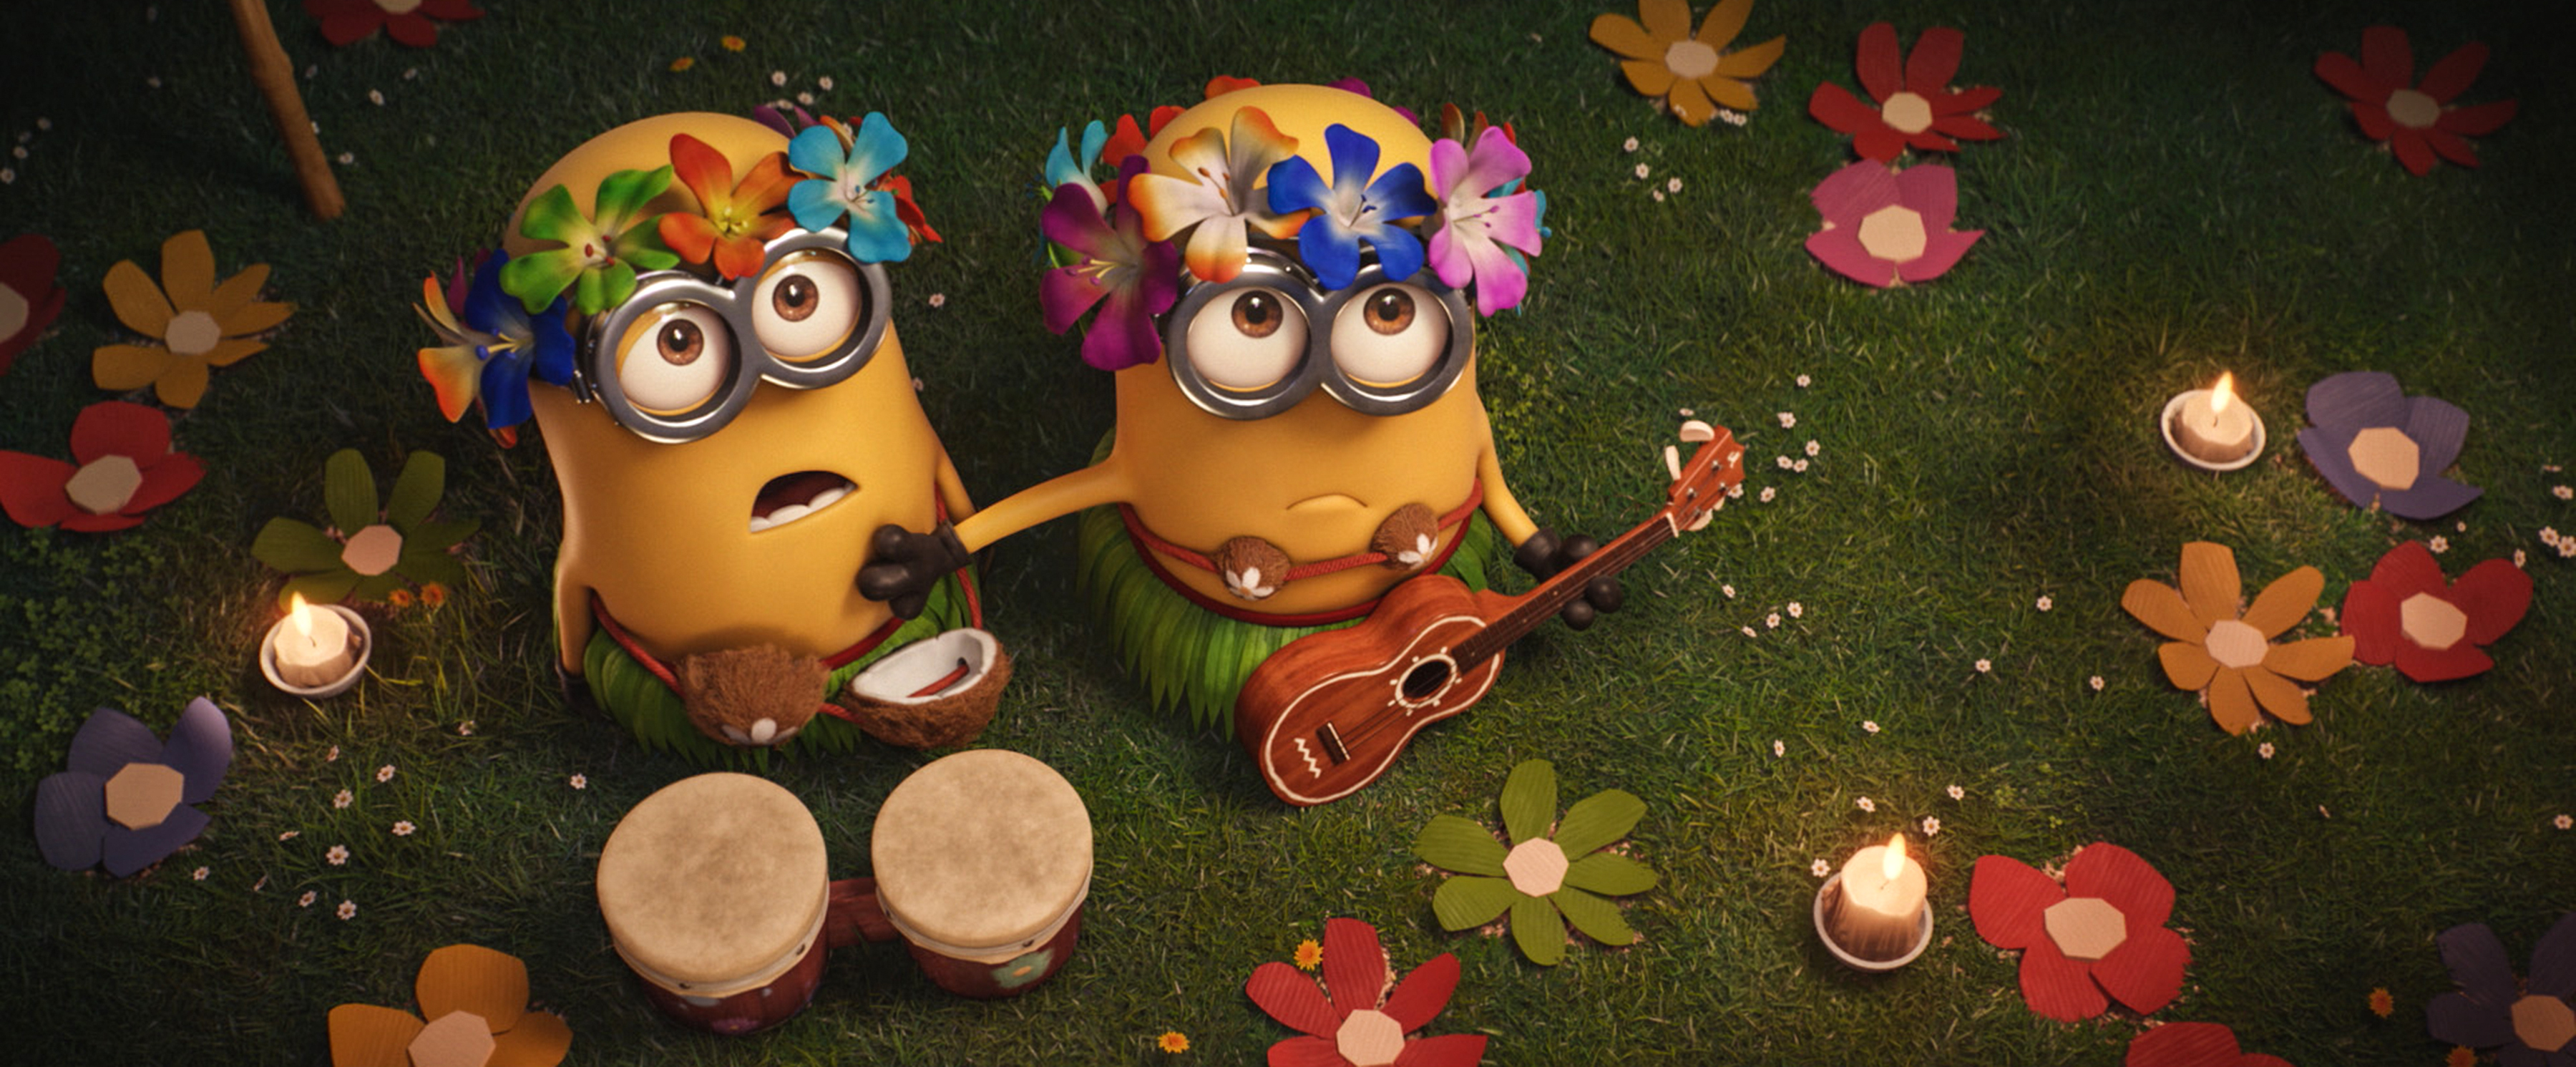 Perfect for Holiday Gift Giving Despicable Me 3 Special Edition On Digital Nov. 21